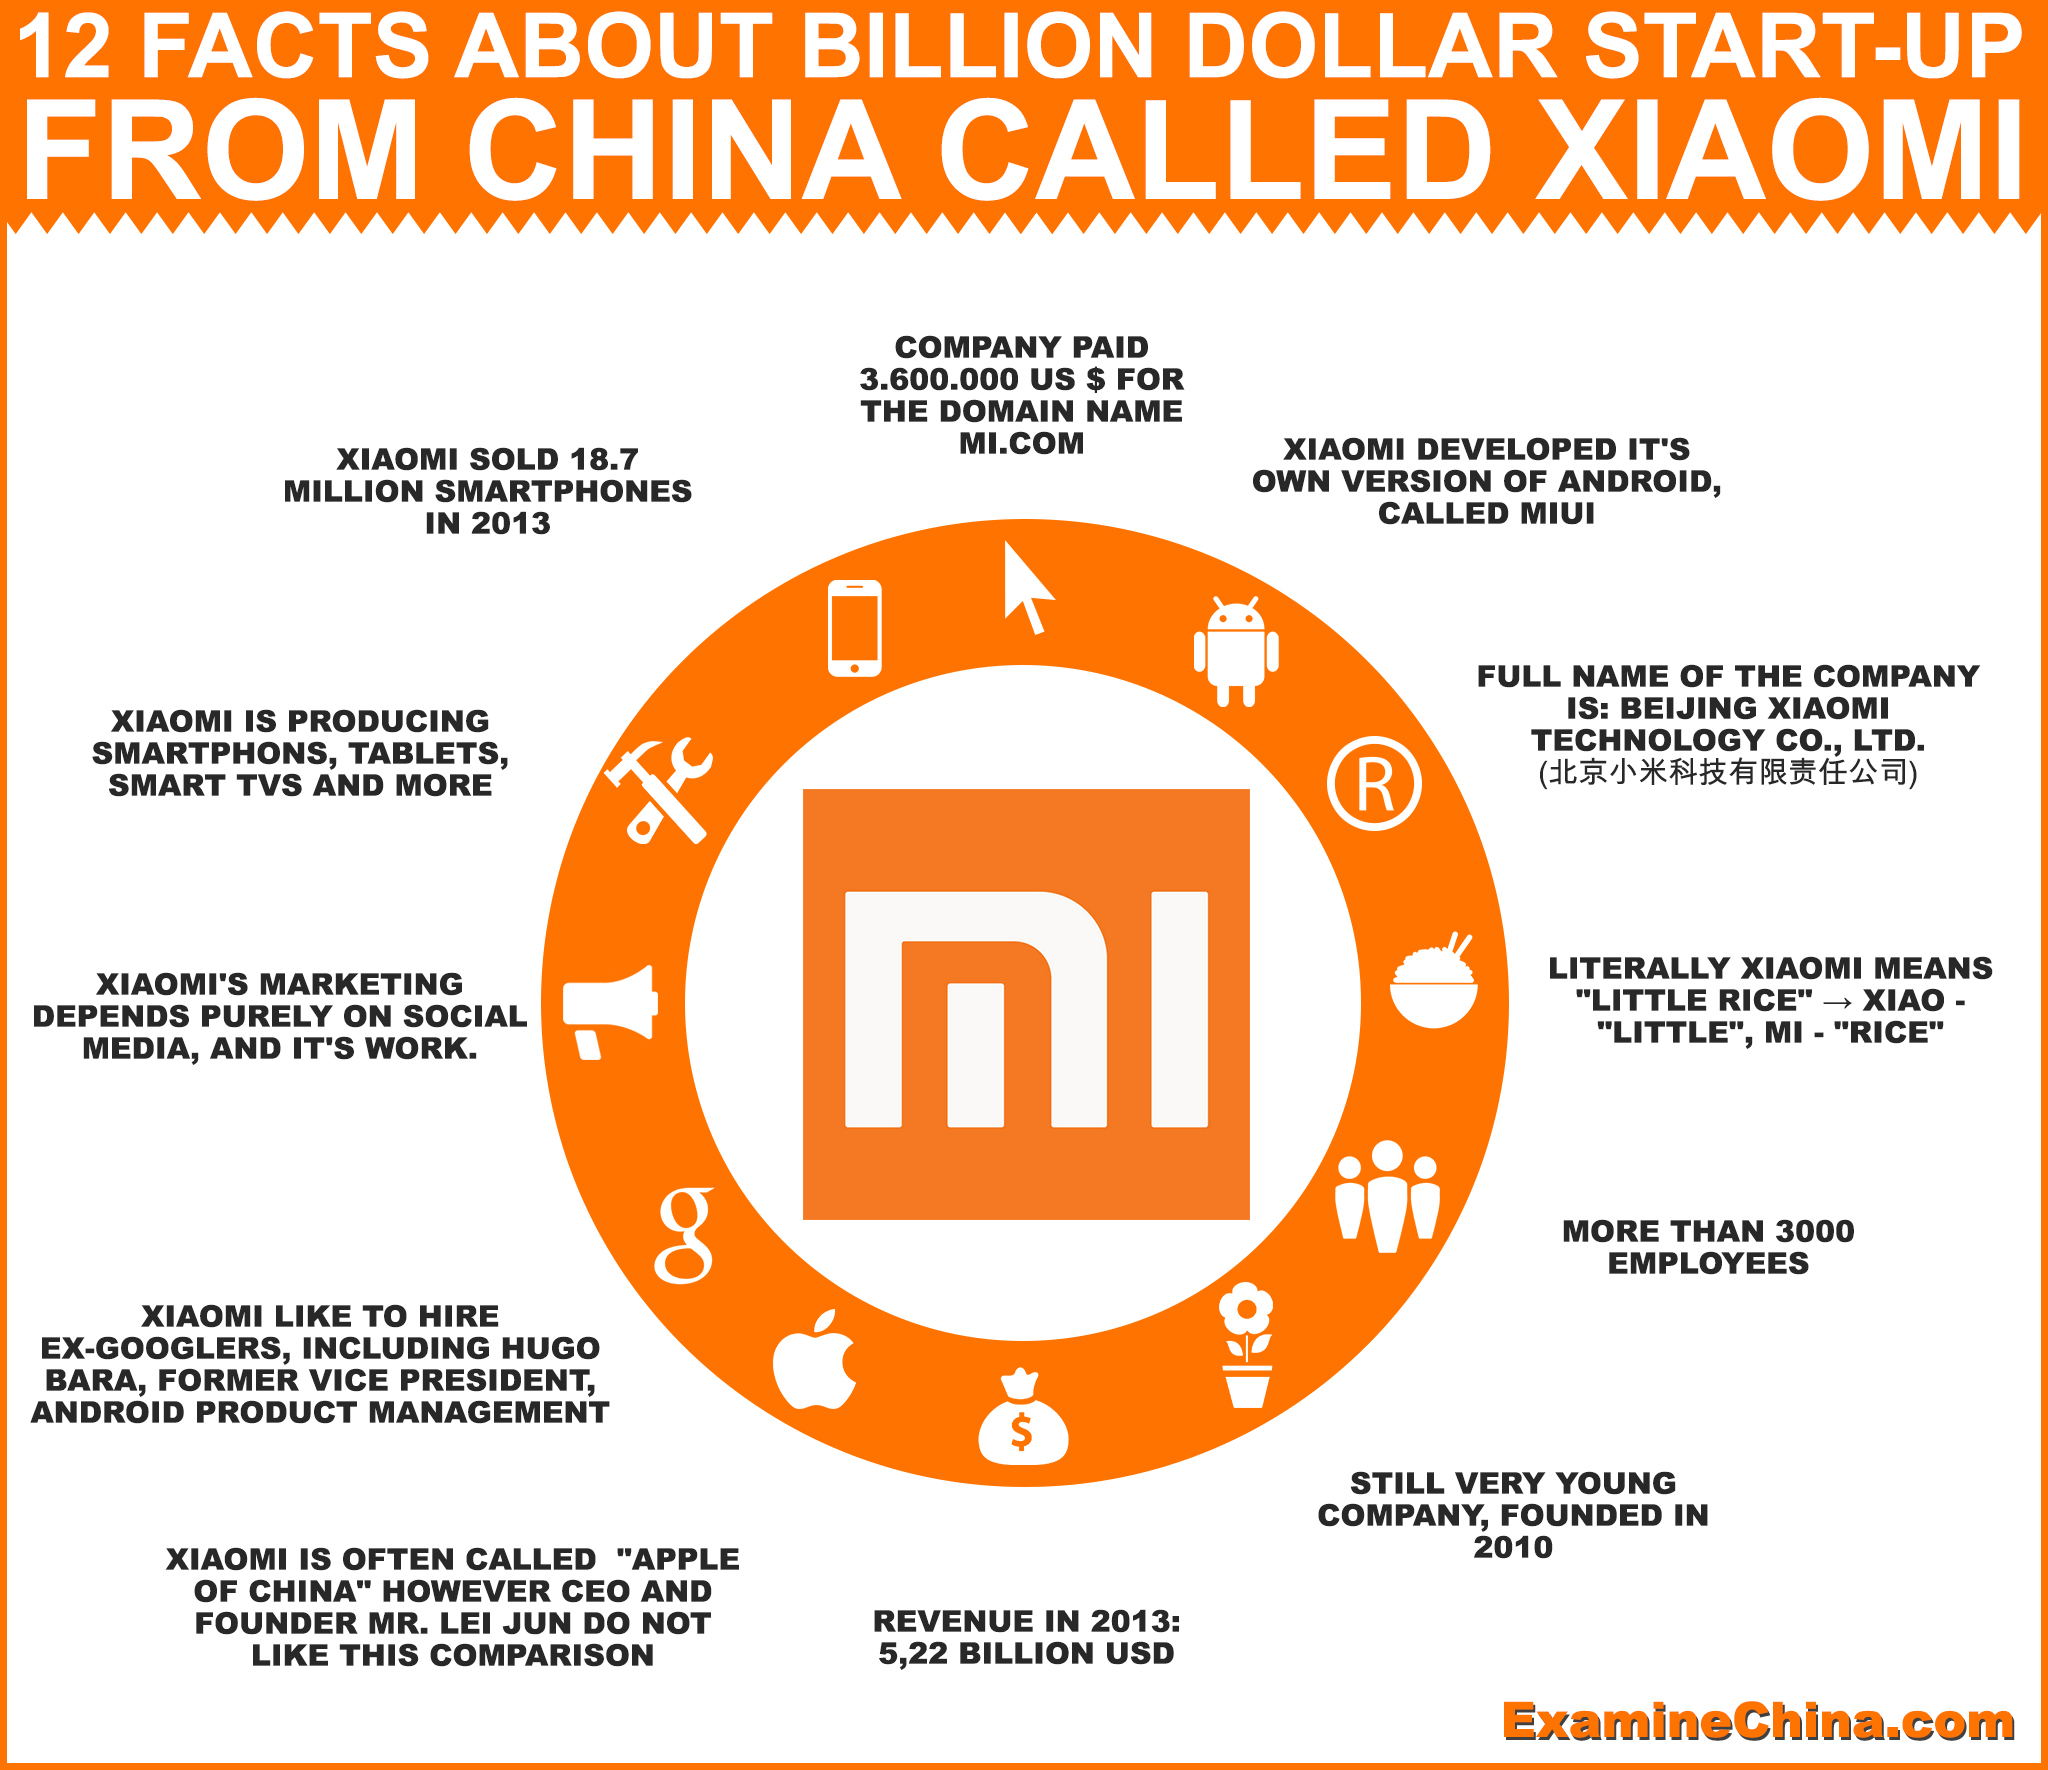 12 Facts About Xiaomi